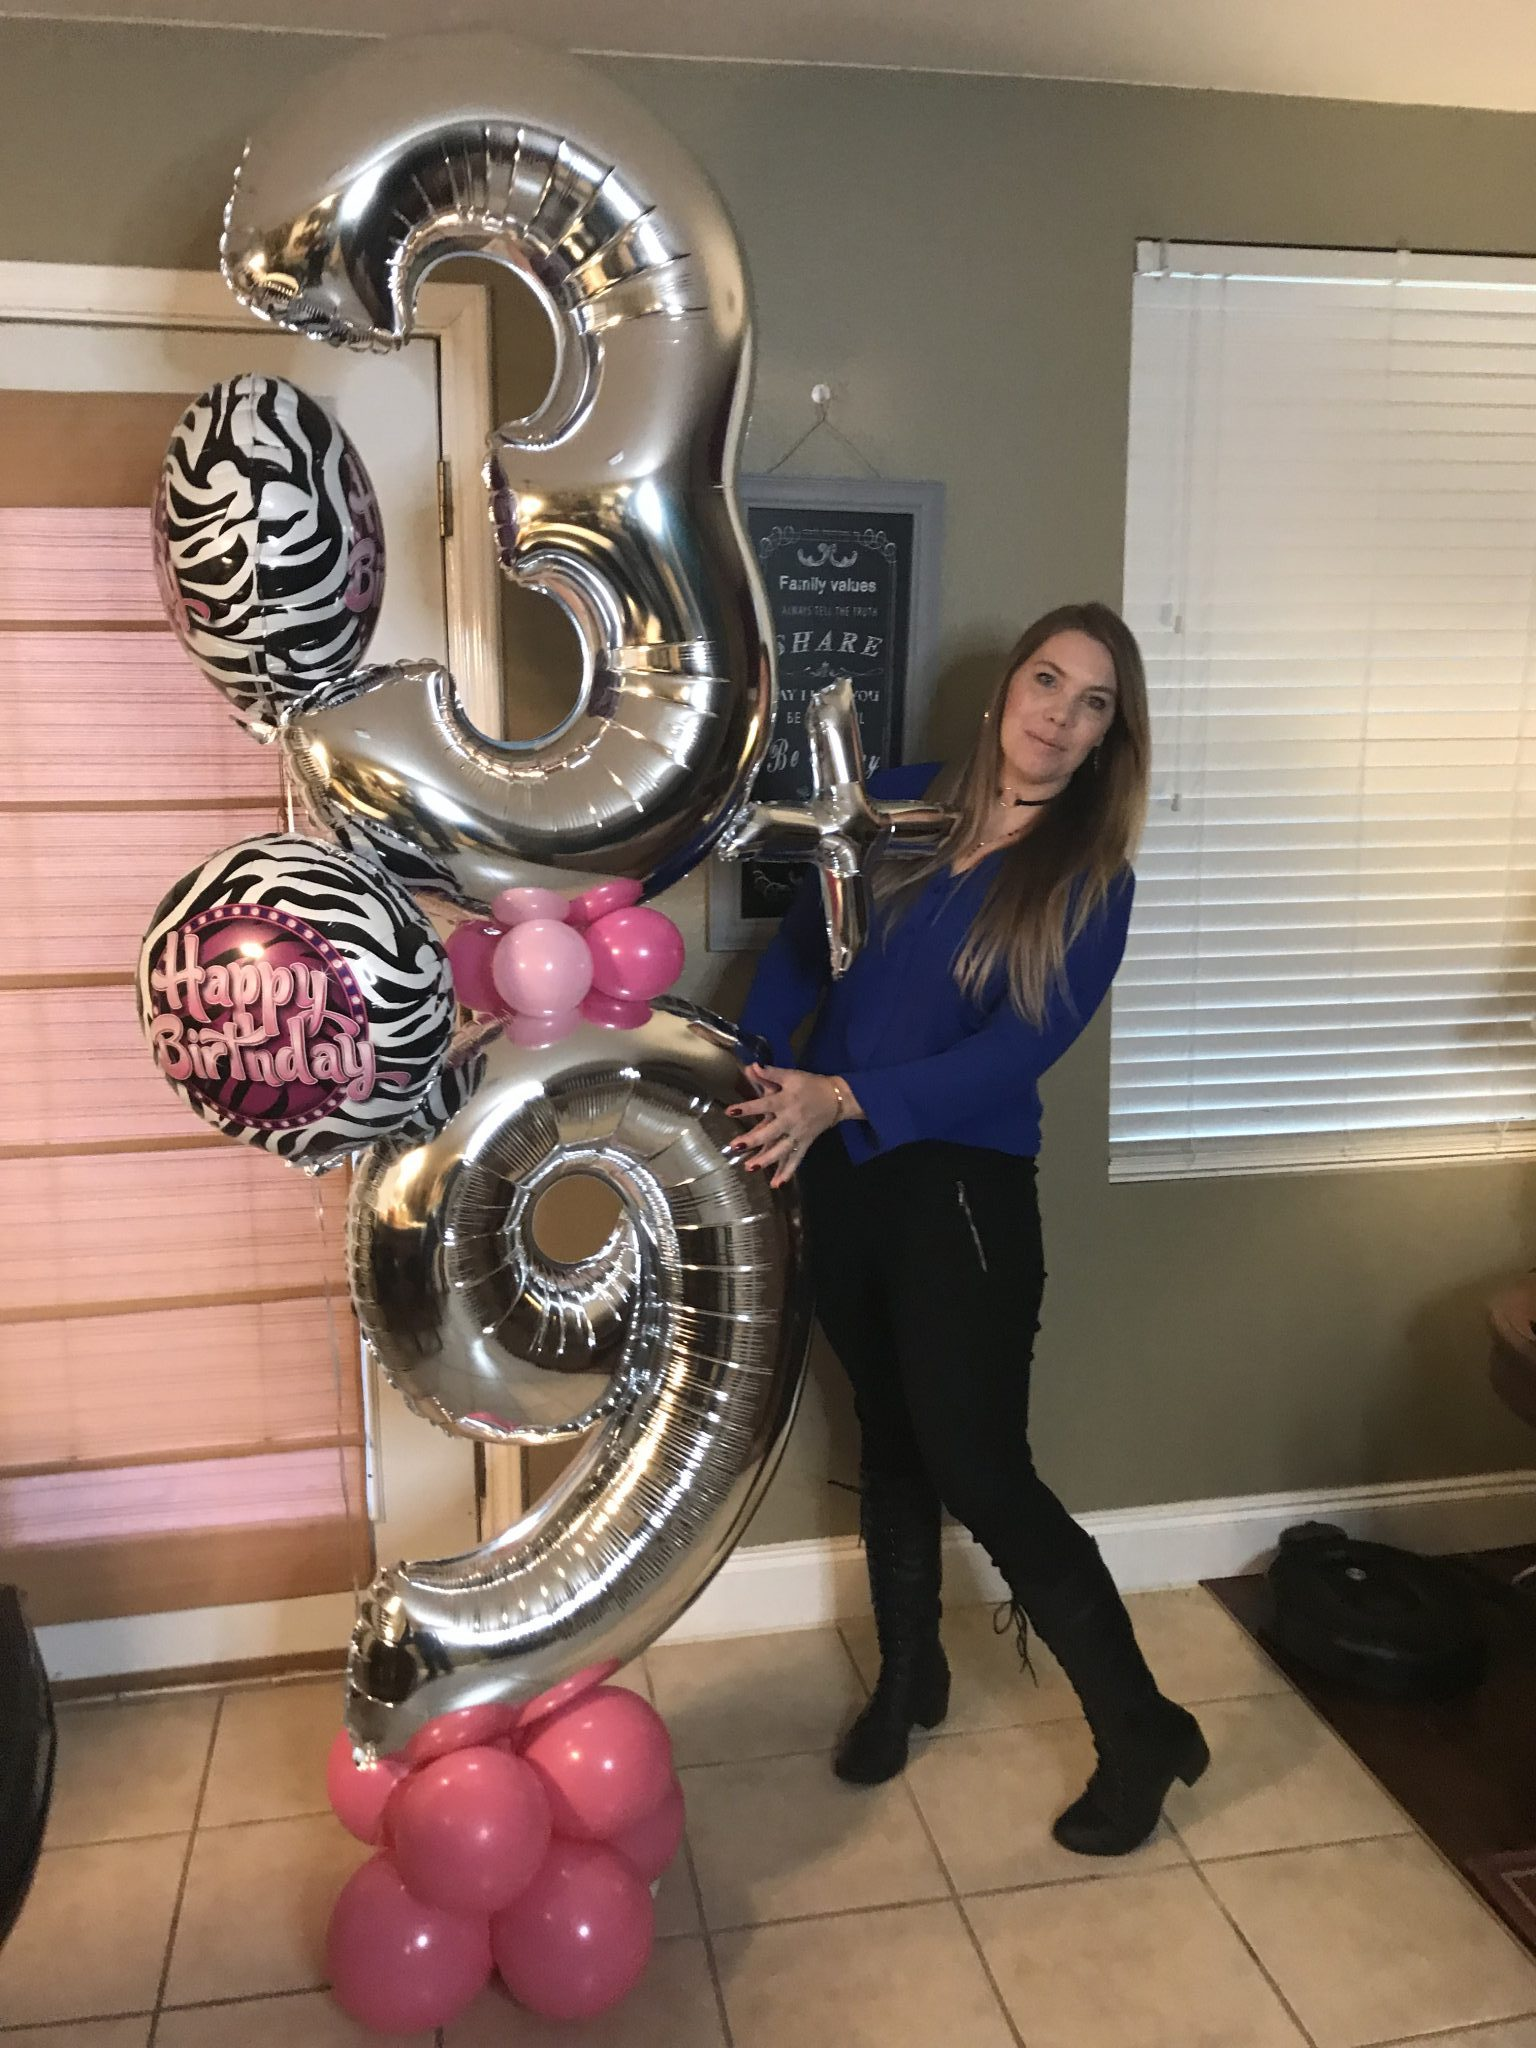 Full Sized Balloon Birthday Decor